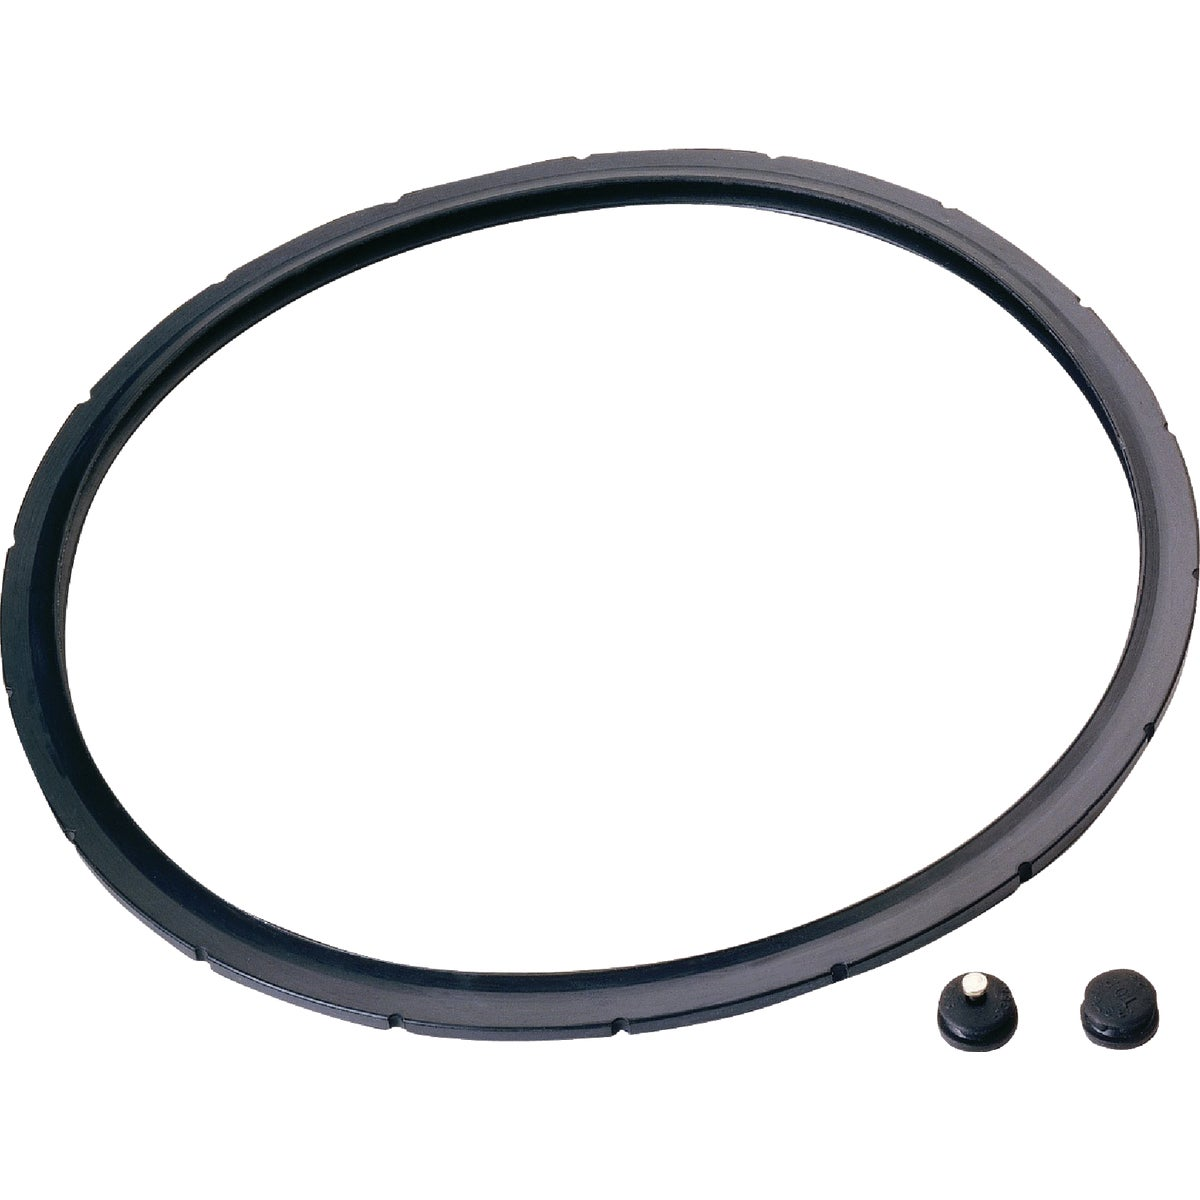 SEALING RING - 09902 by National Presto